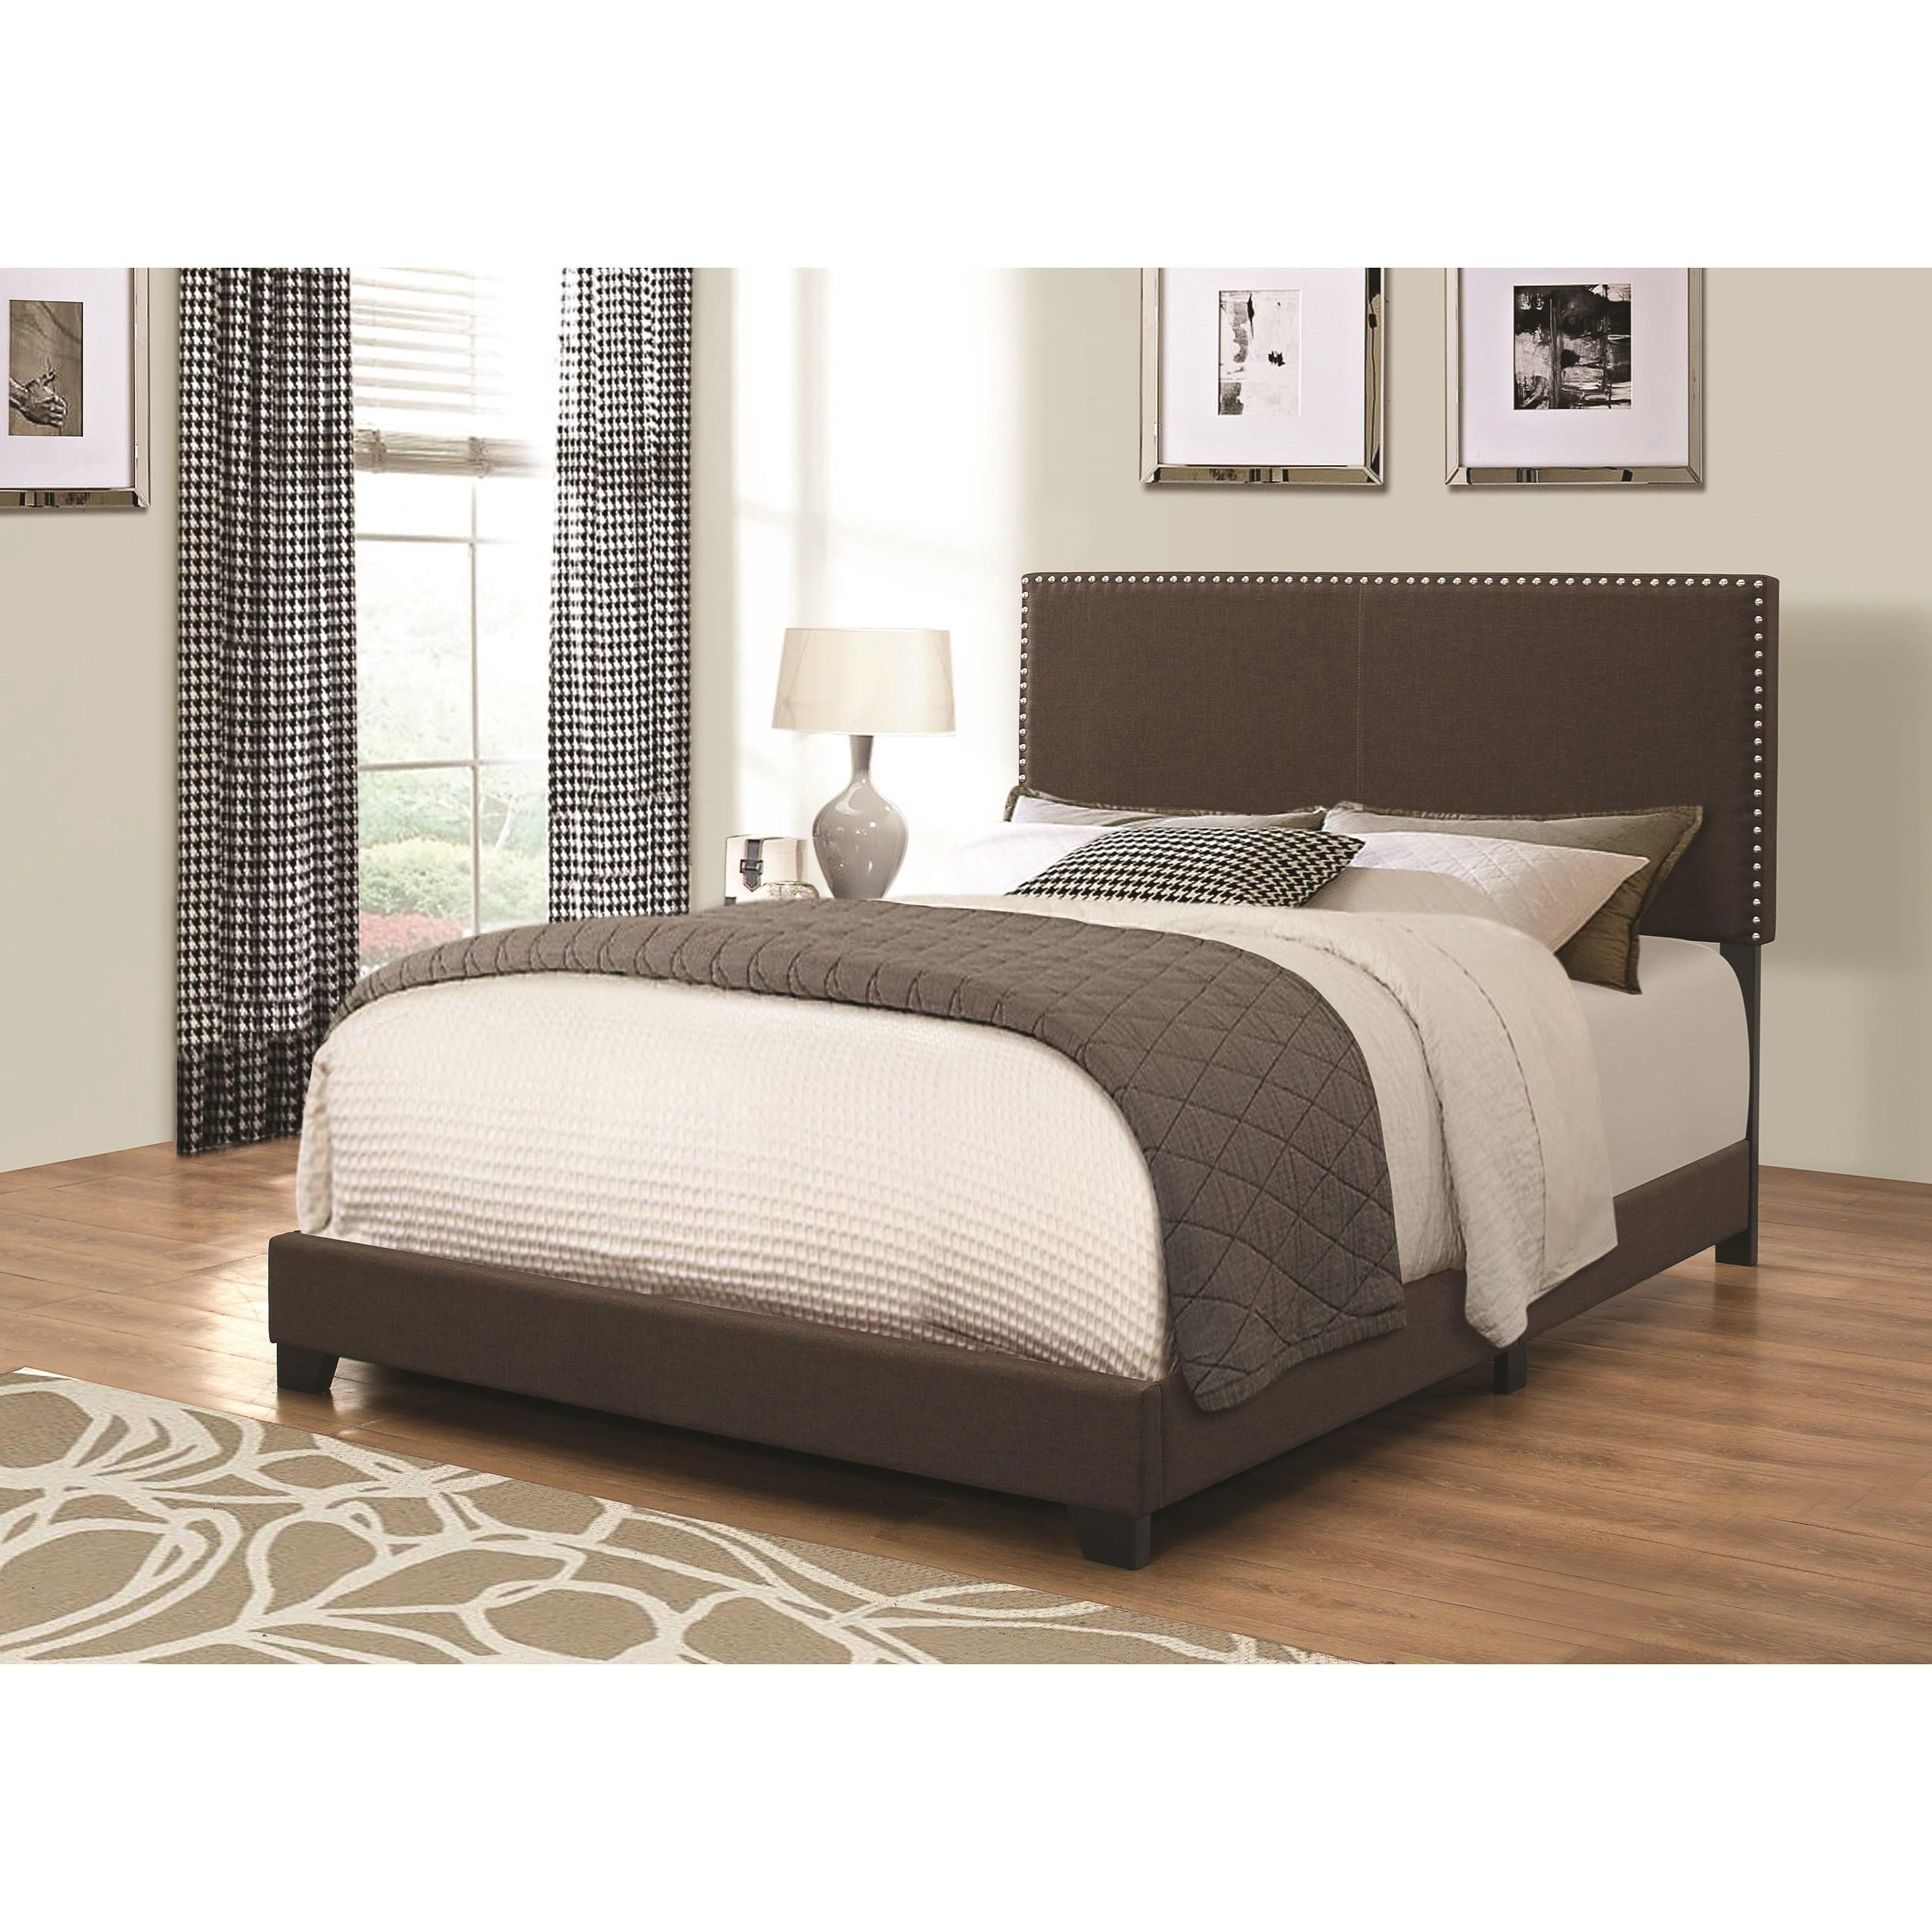 Coaster Upholstered Beds Queen Bed - Item Number: 350081Q